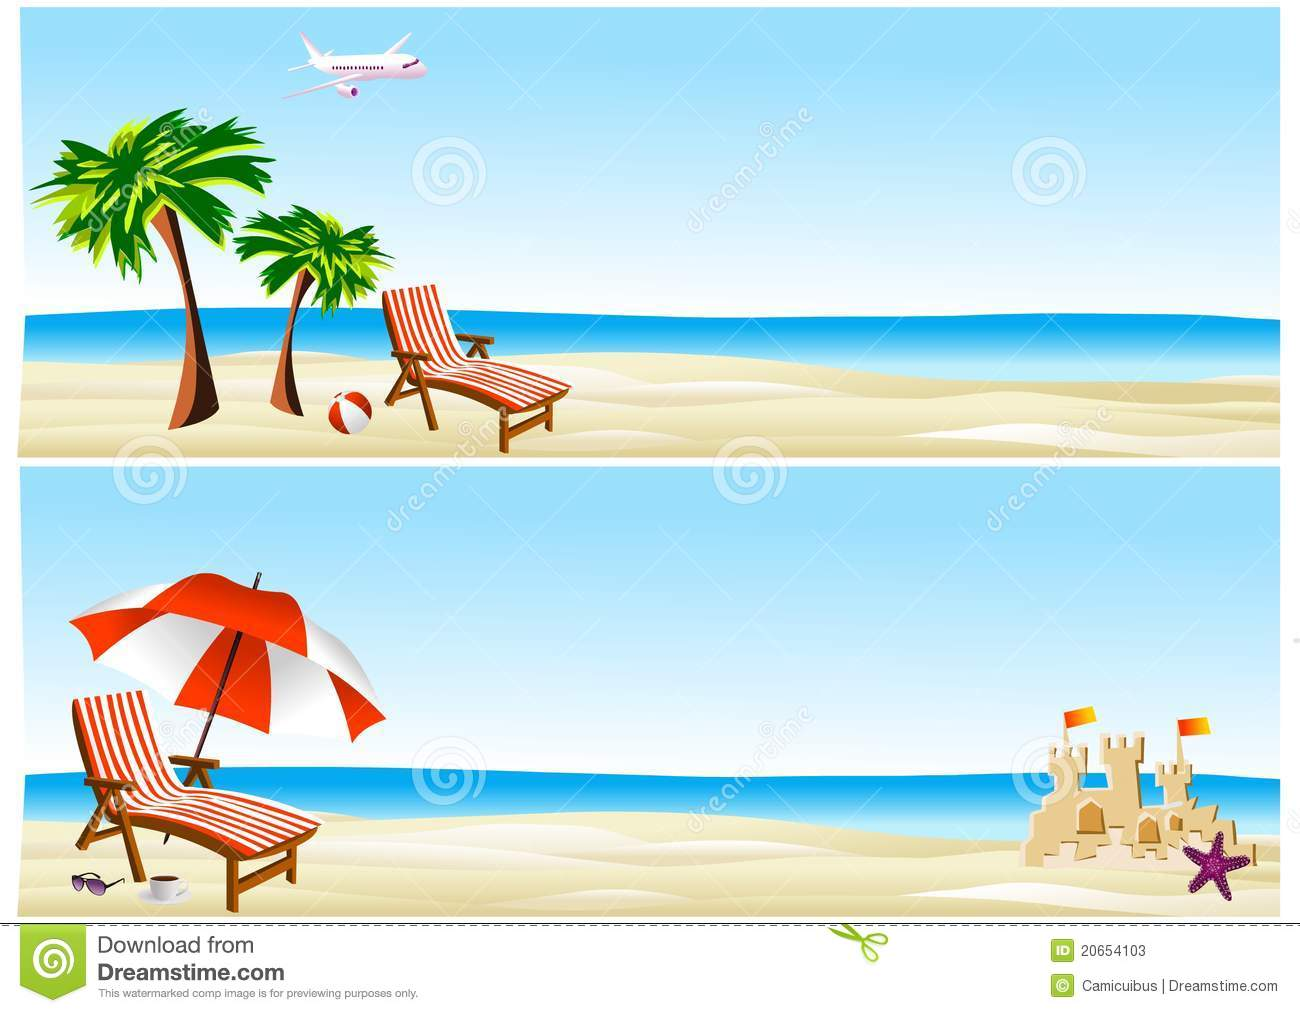 Beach banners stock illustration. Image of ocean, chair ...